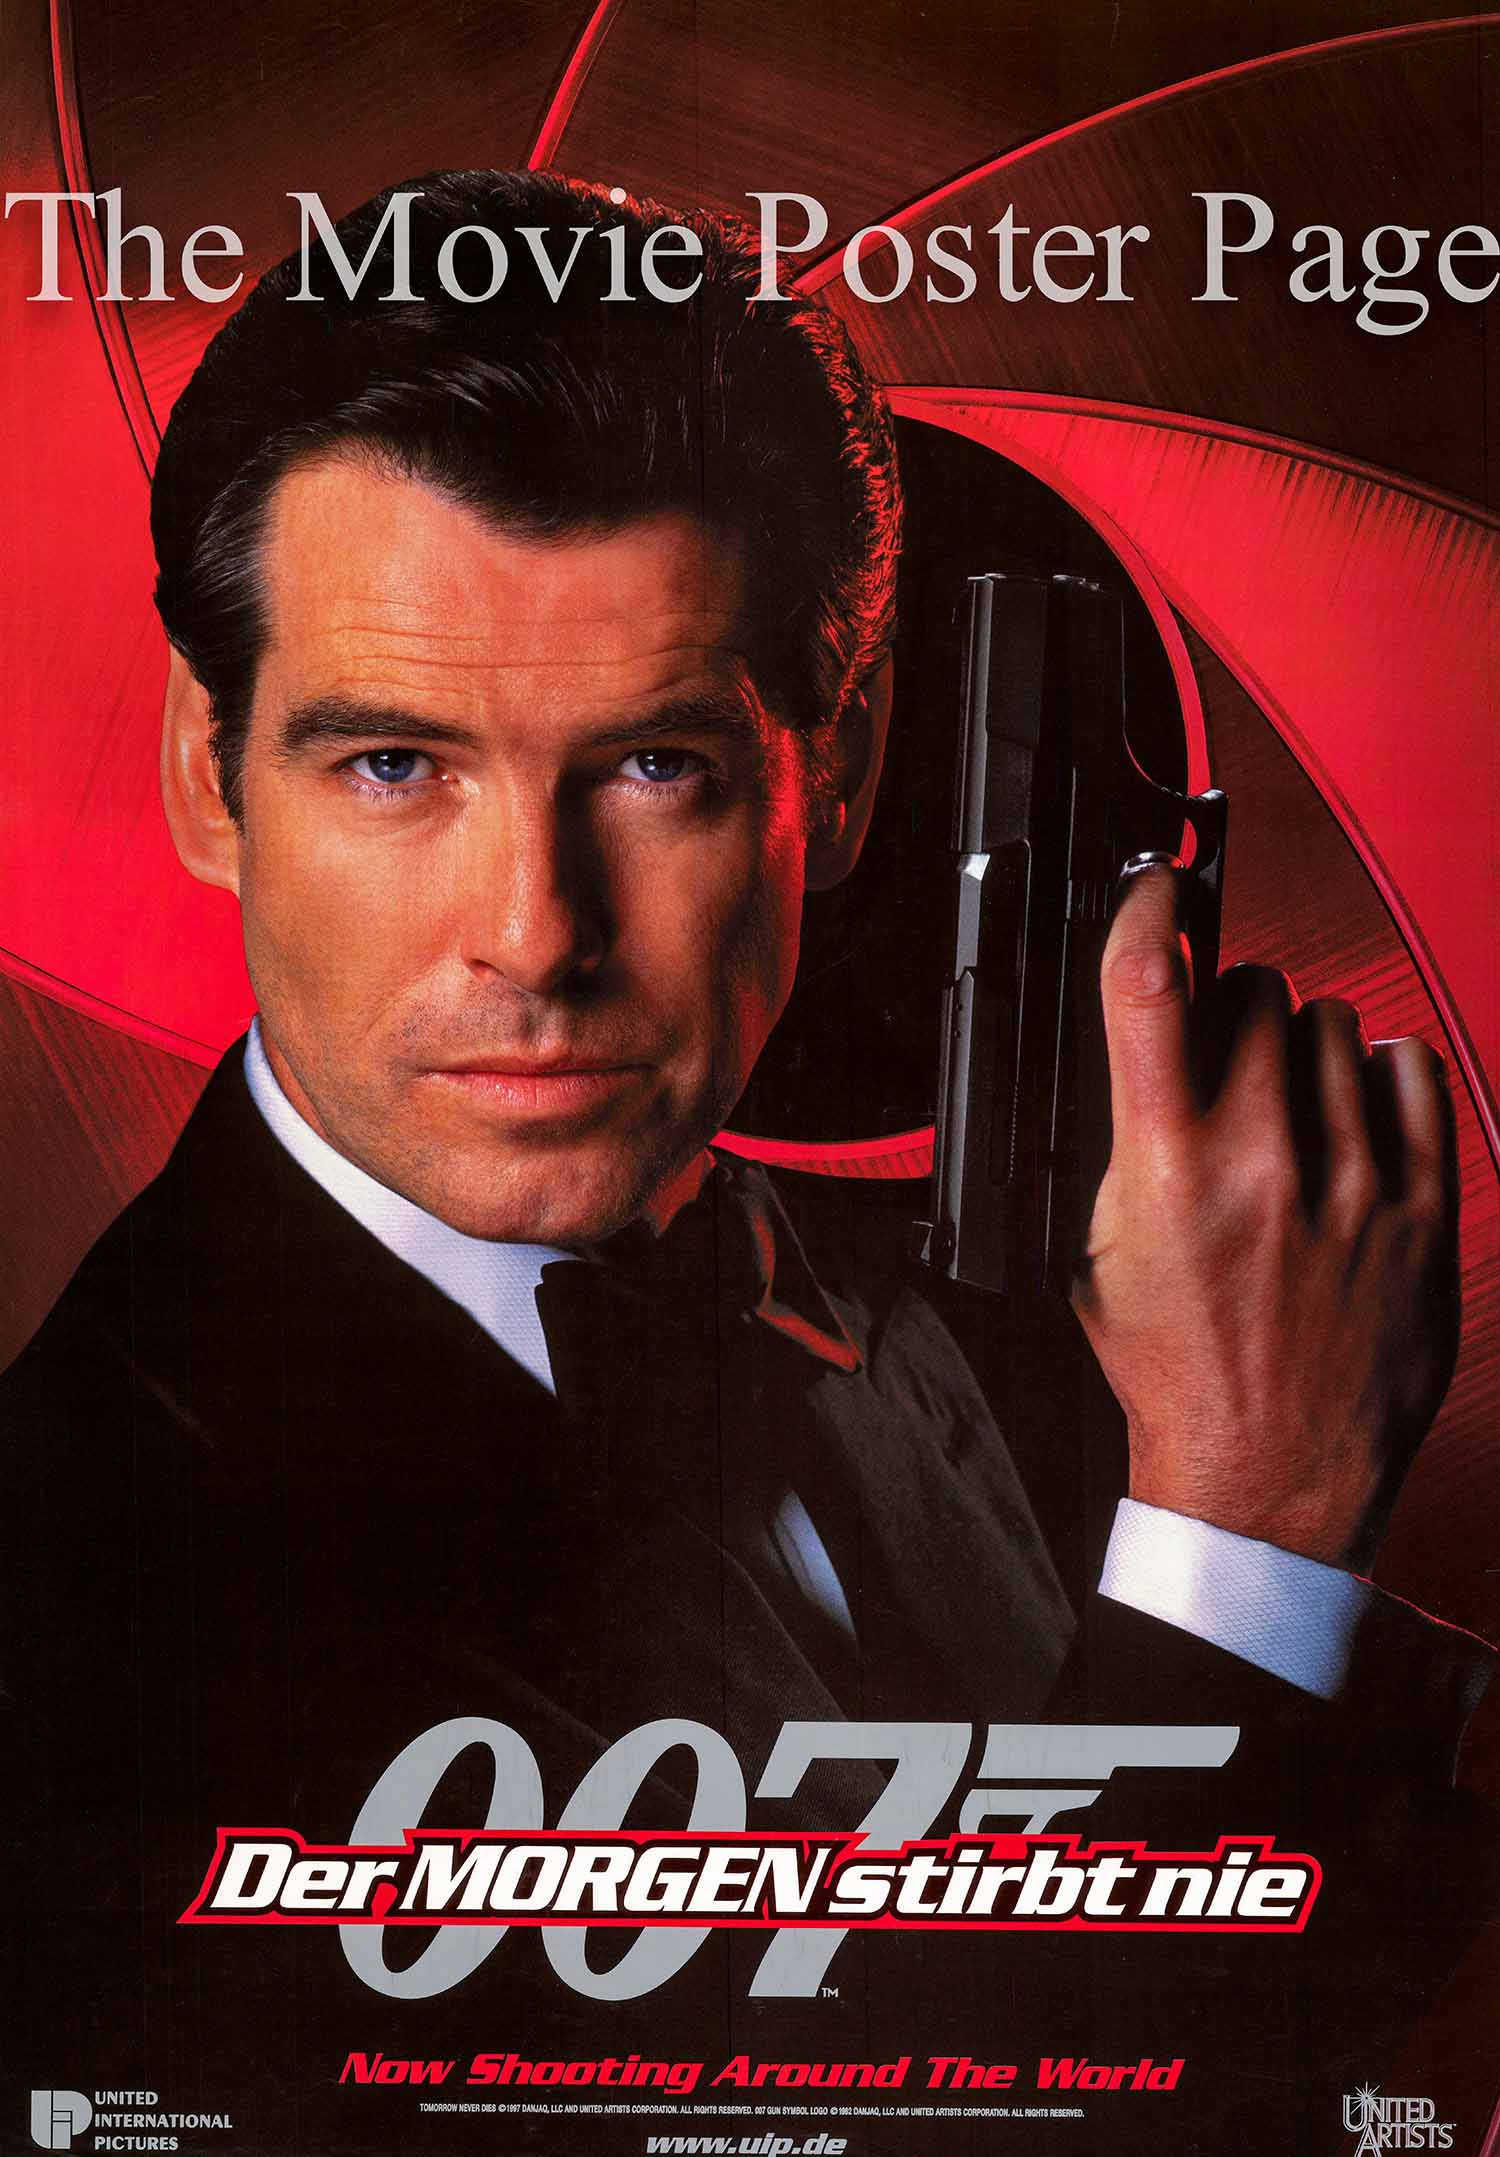 This image shows the German promotional poster for the 1997 James Bond film <i>Tomorrow Never Dies</i> starring Pierce Brosnan</i>.